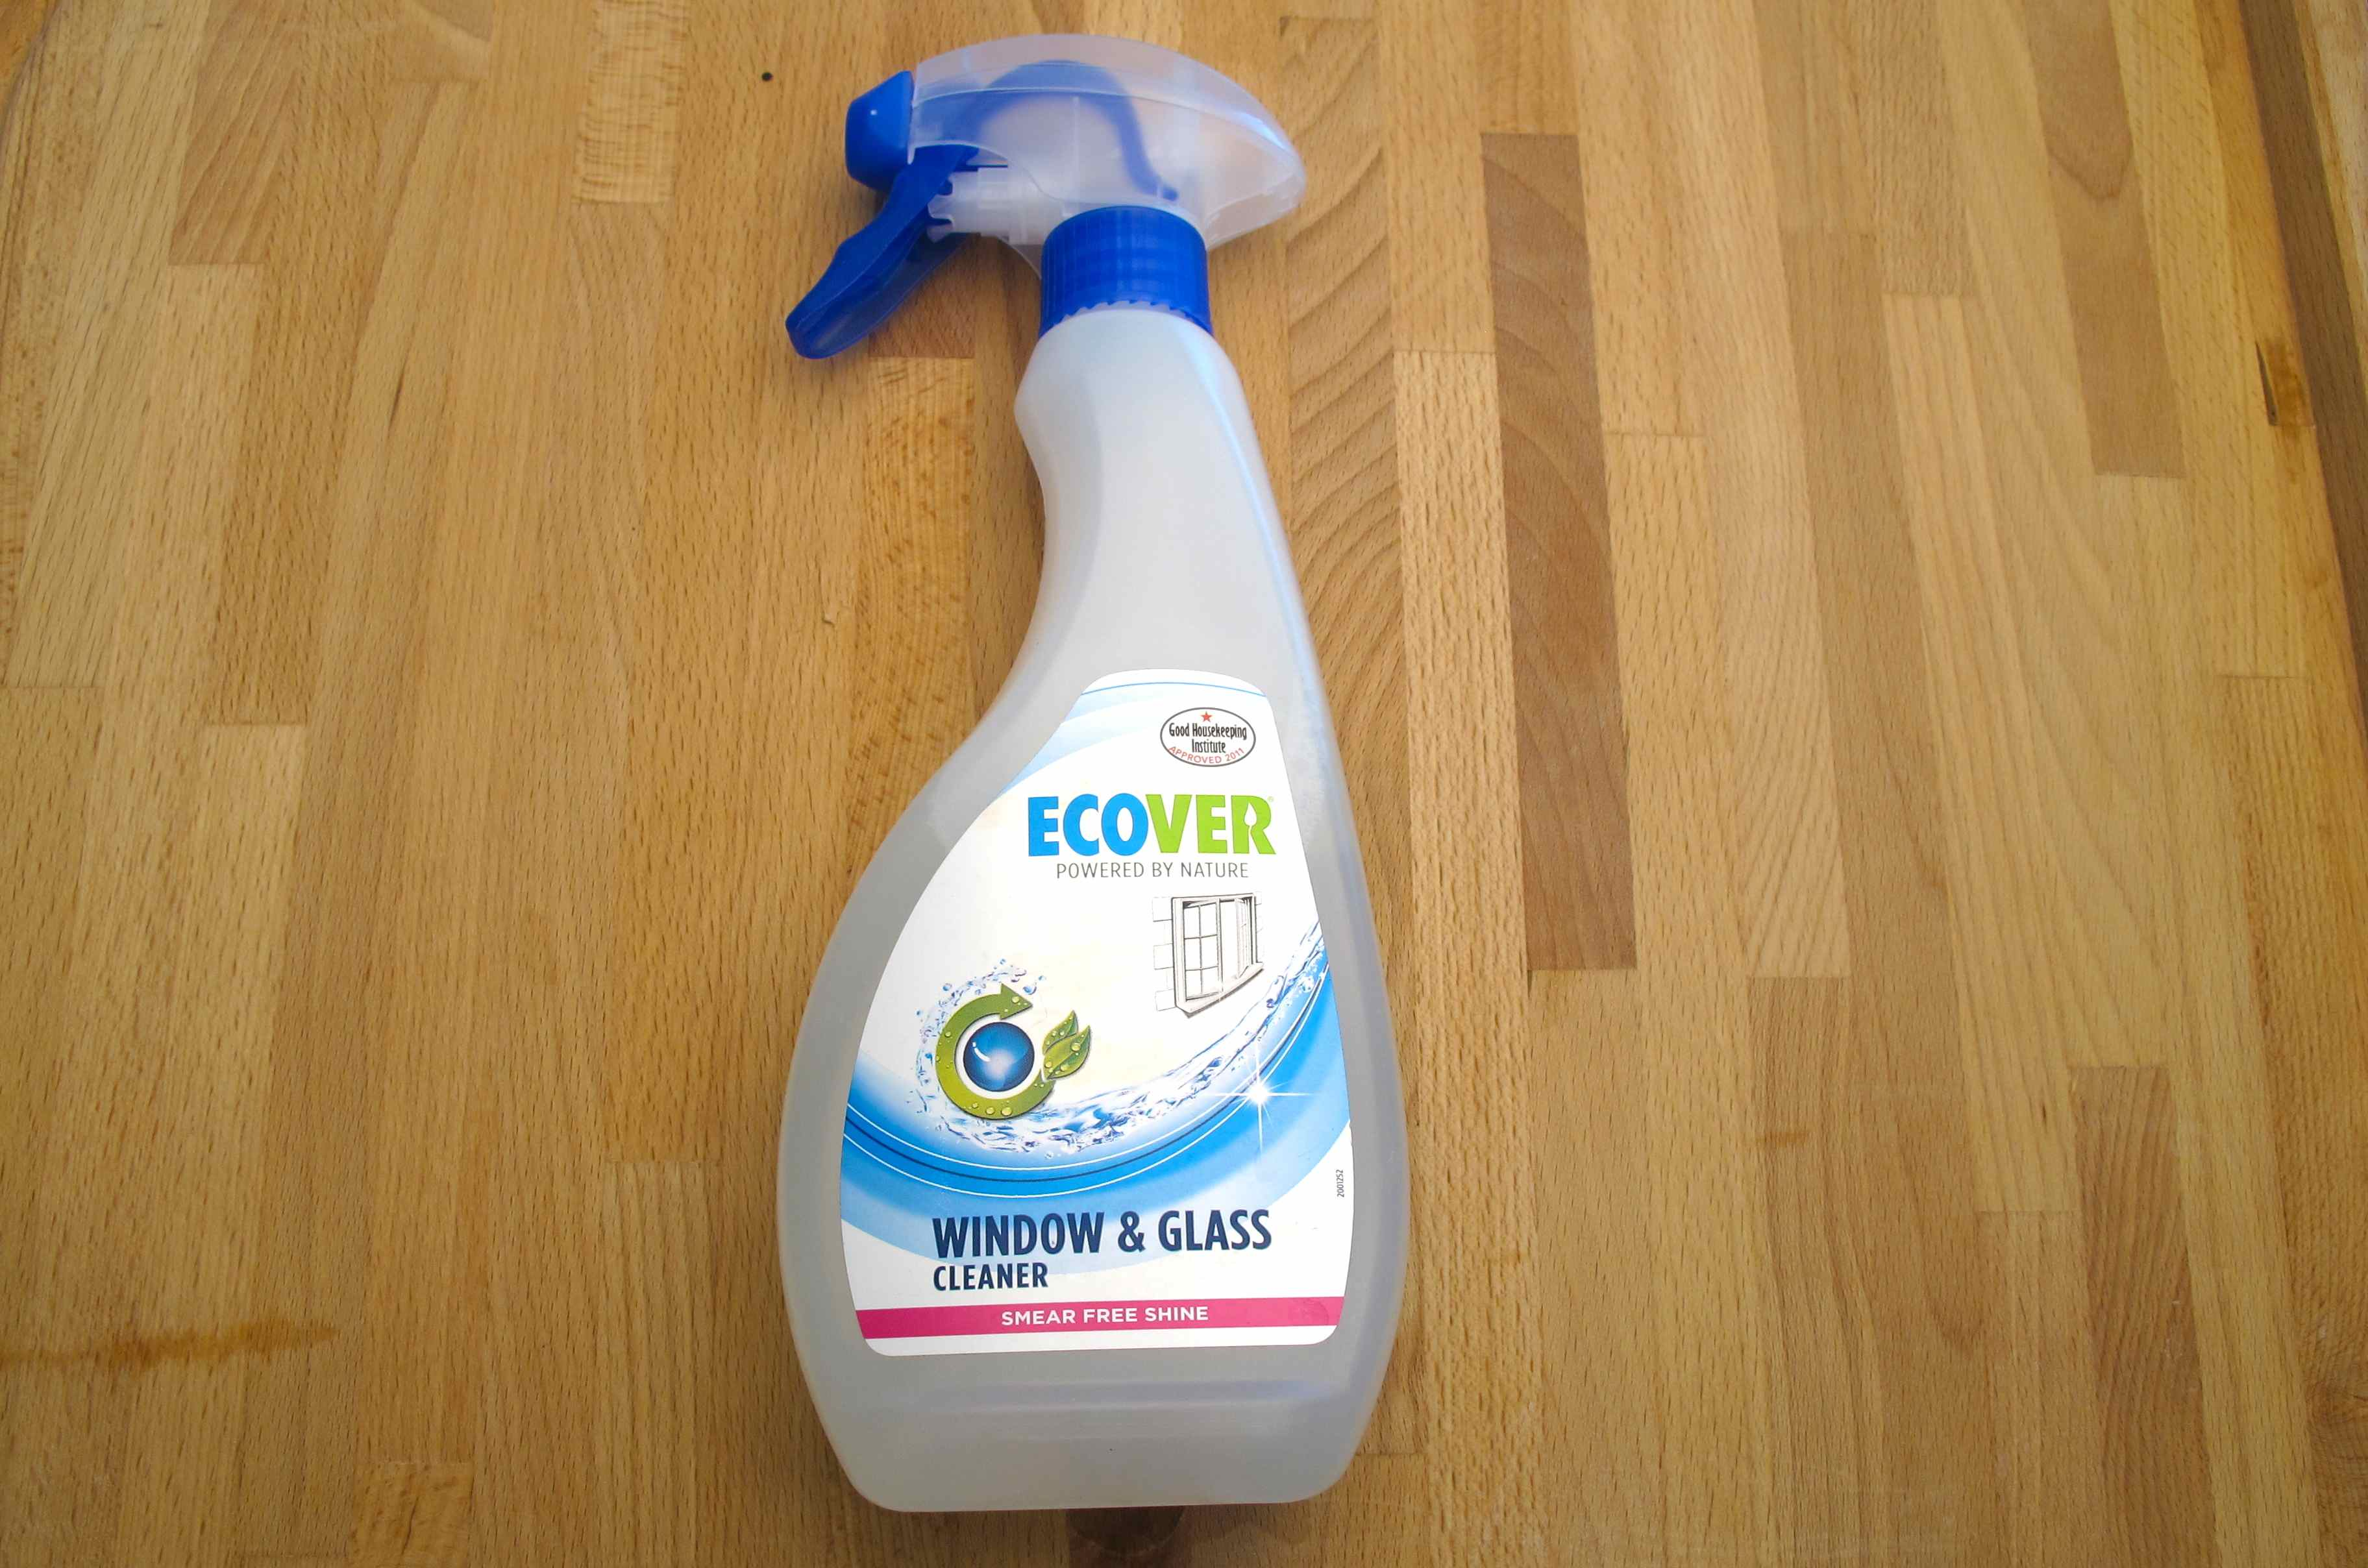 Ecover window glass cleaner